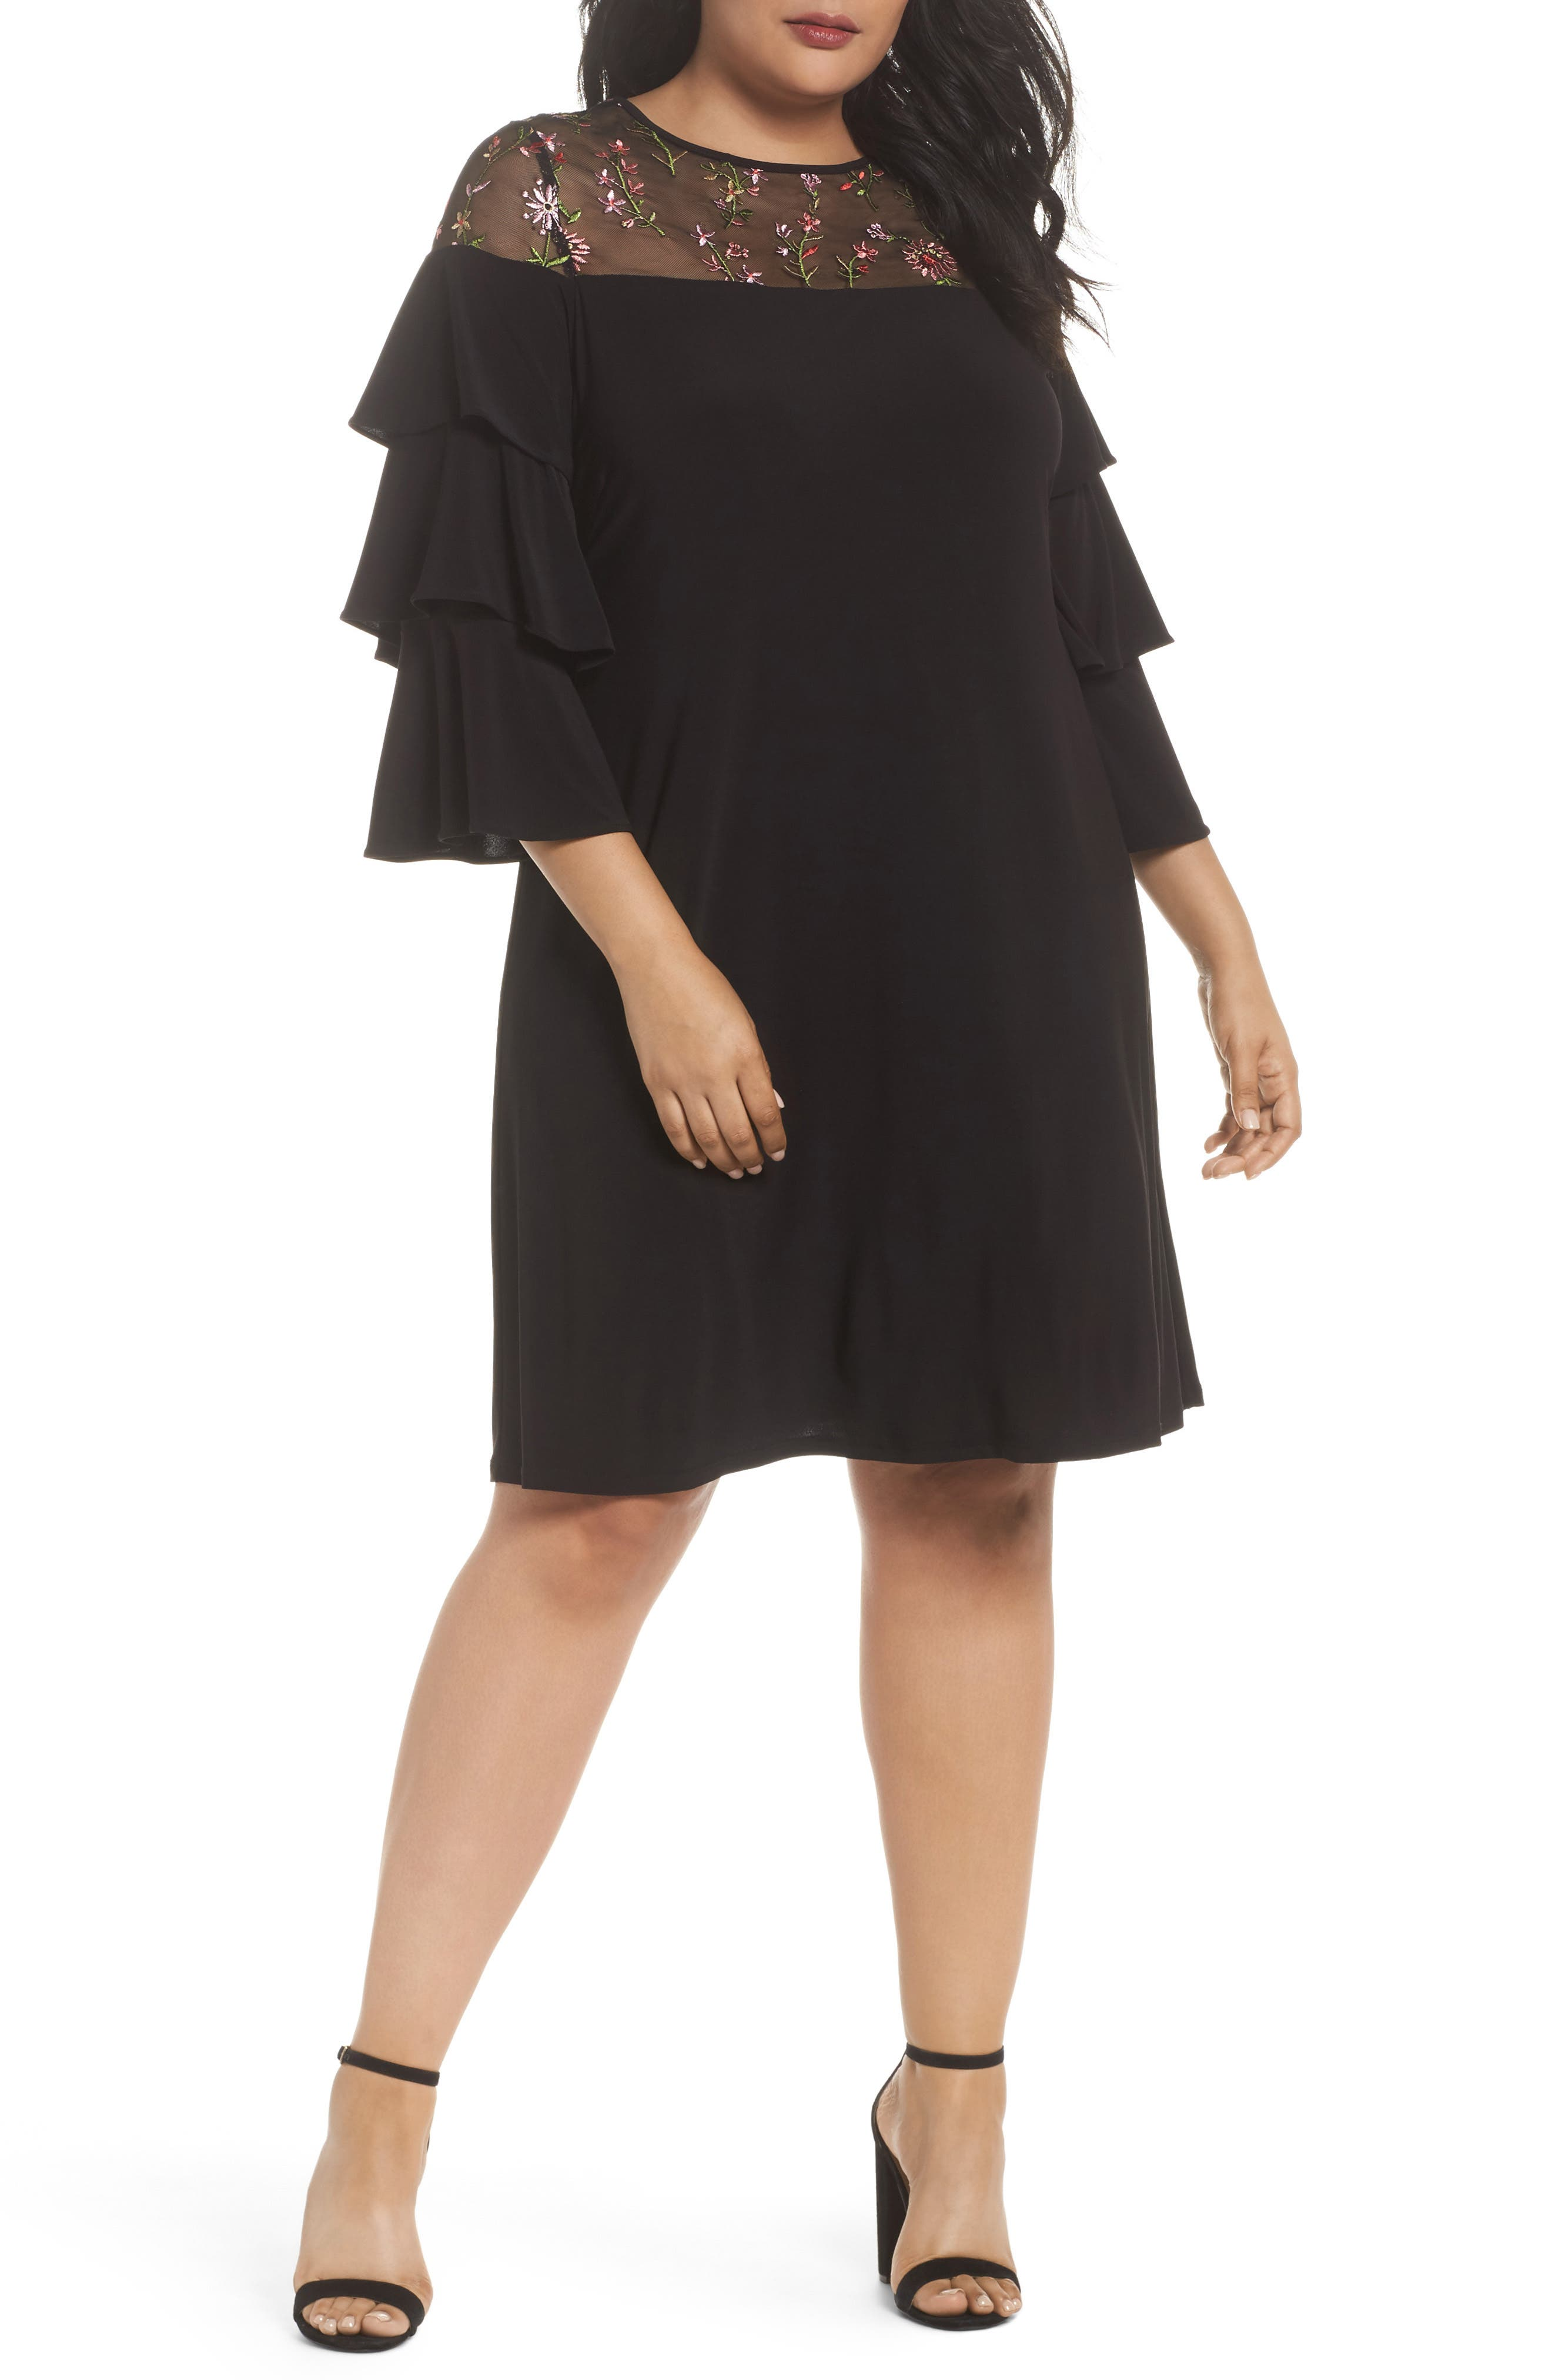 Ruffled Sleeve Embroidered Yoke A-Line Dress,                             Main thumbnail 1, color,                             Black/ Coral